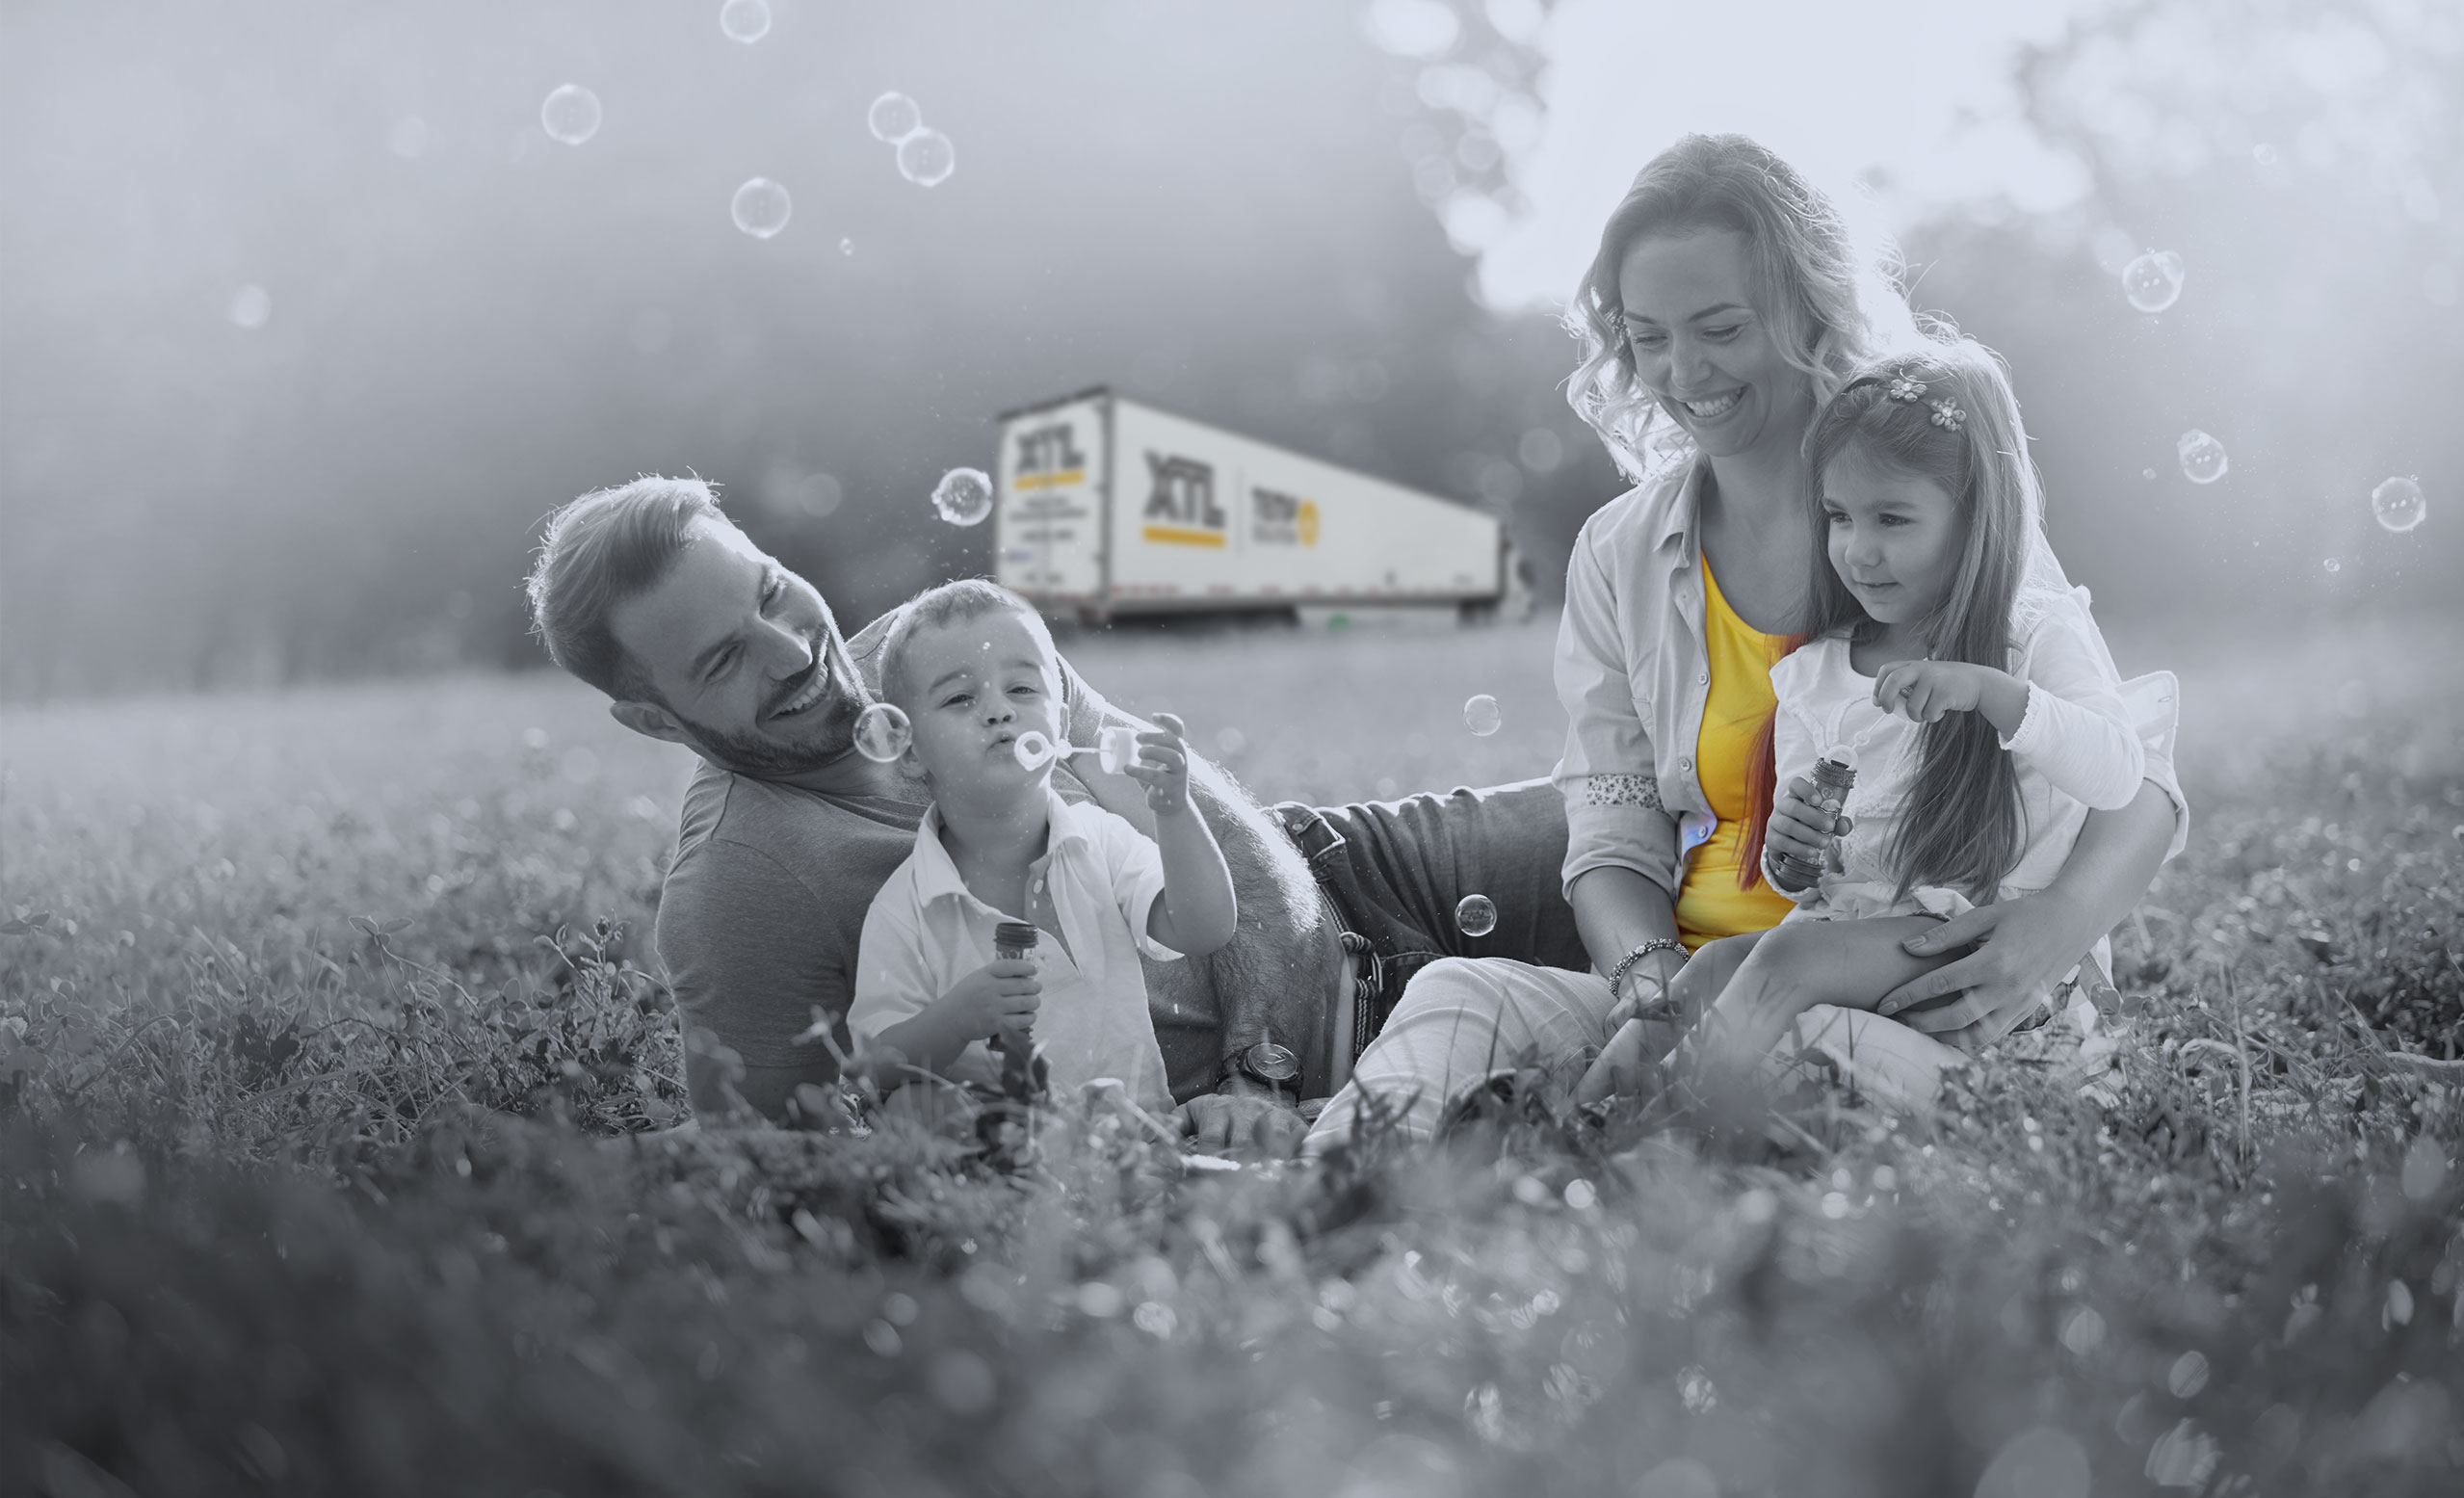 Family playing in the grass, blowing bubbles, with XTL transport truck in the background